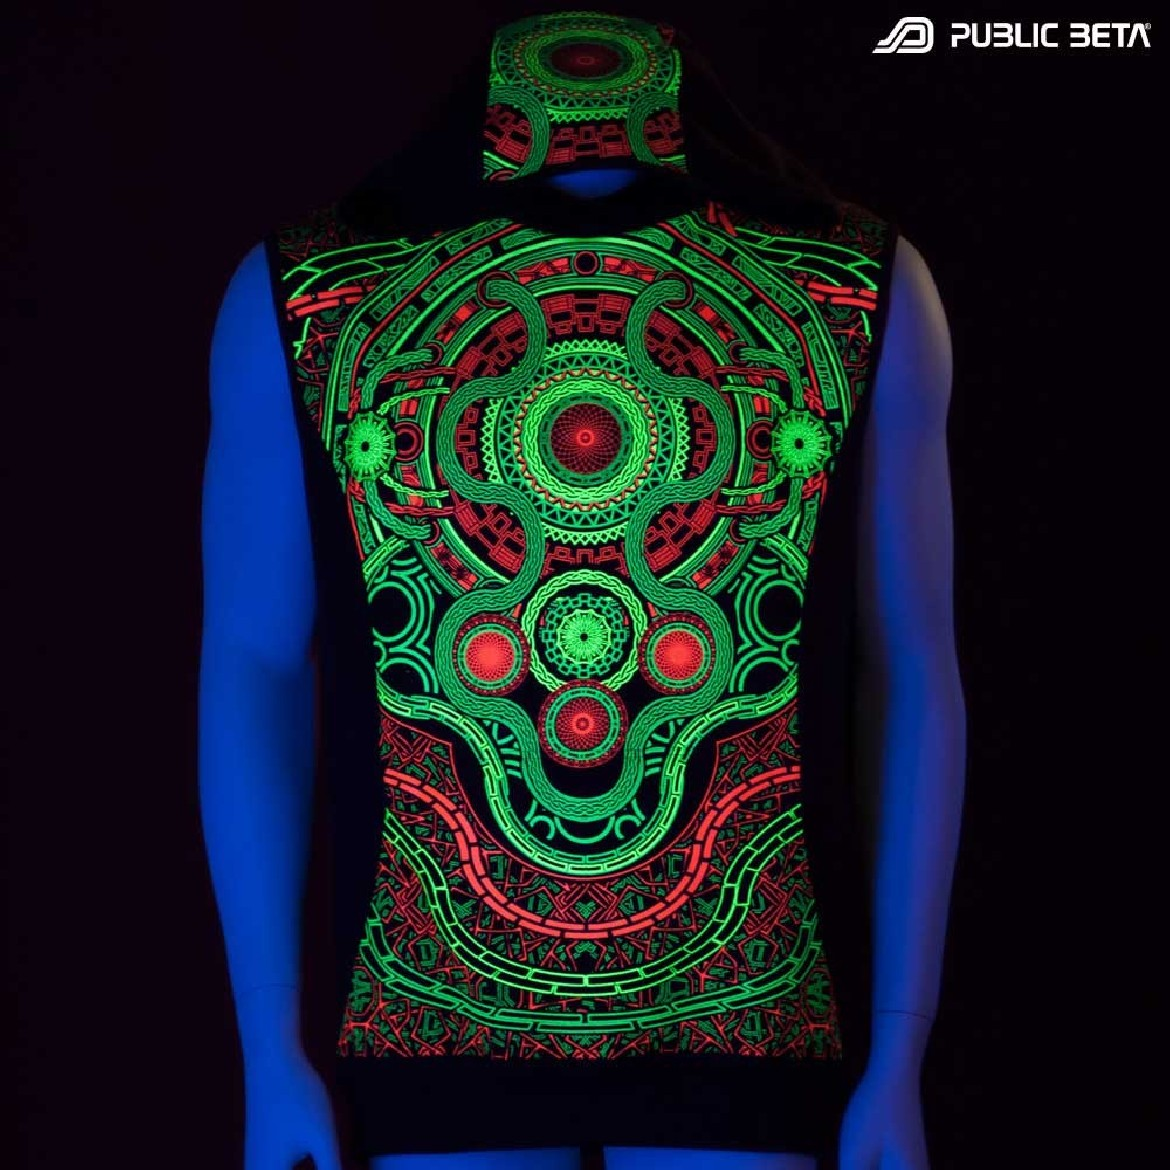 UV reactive printed vests